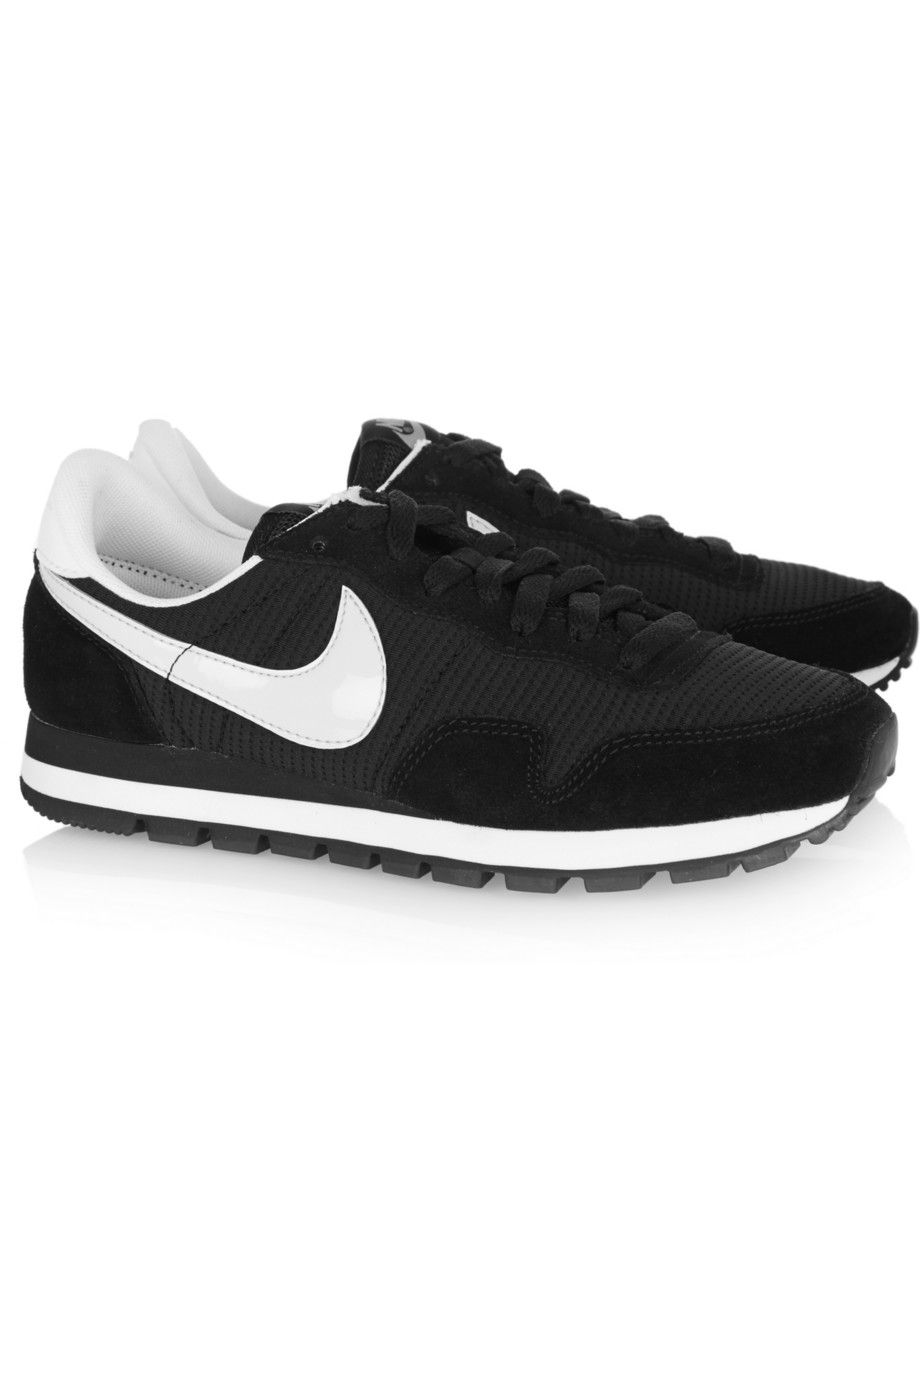 on sale 097f9 e0c18 Nike Air Pegasus 83 suede, leather and mesh sneakers